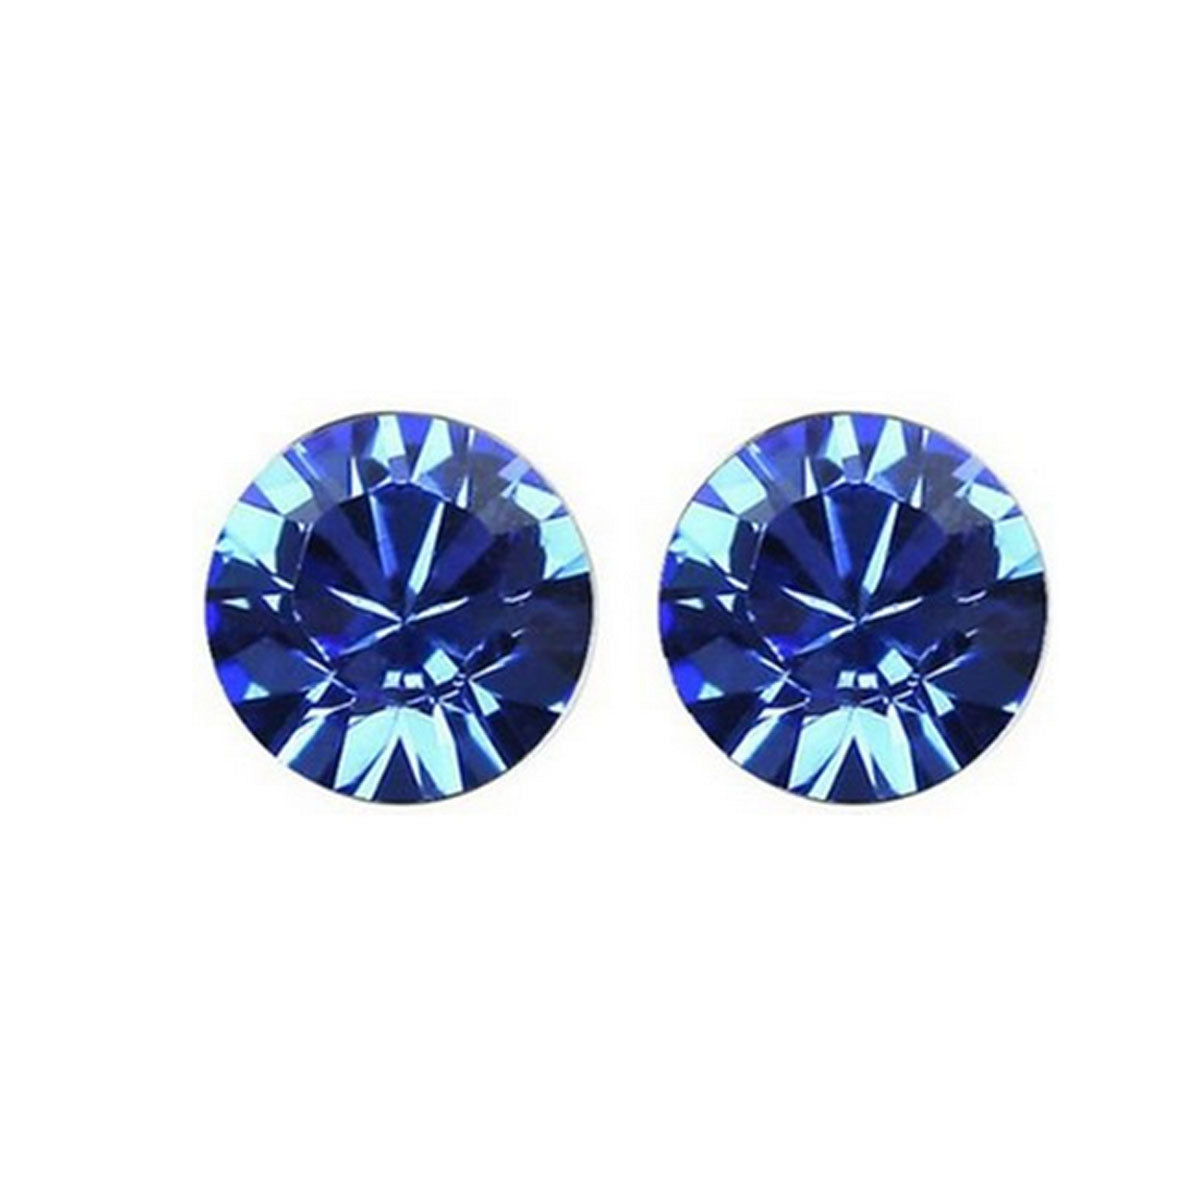 Large Royal Blue Swarovski Elements Crystal Stud Earrings